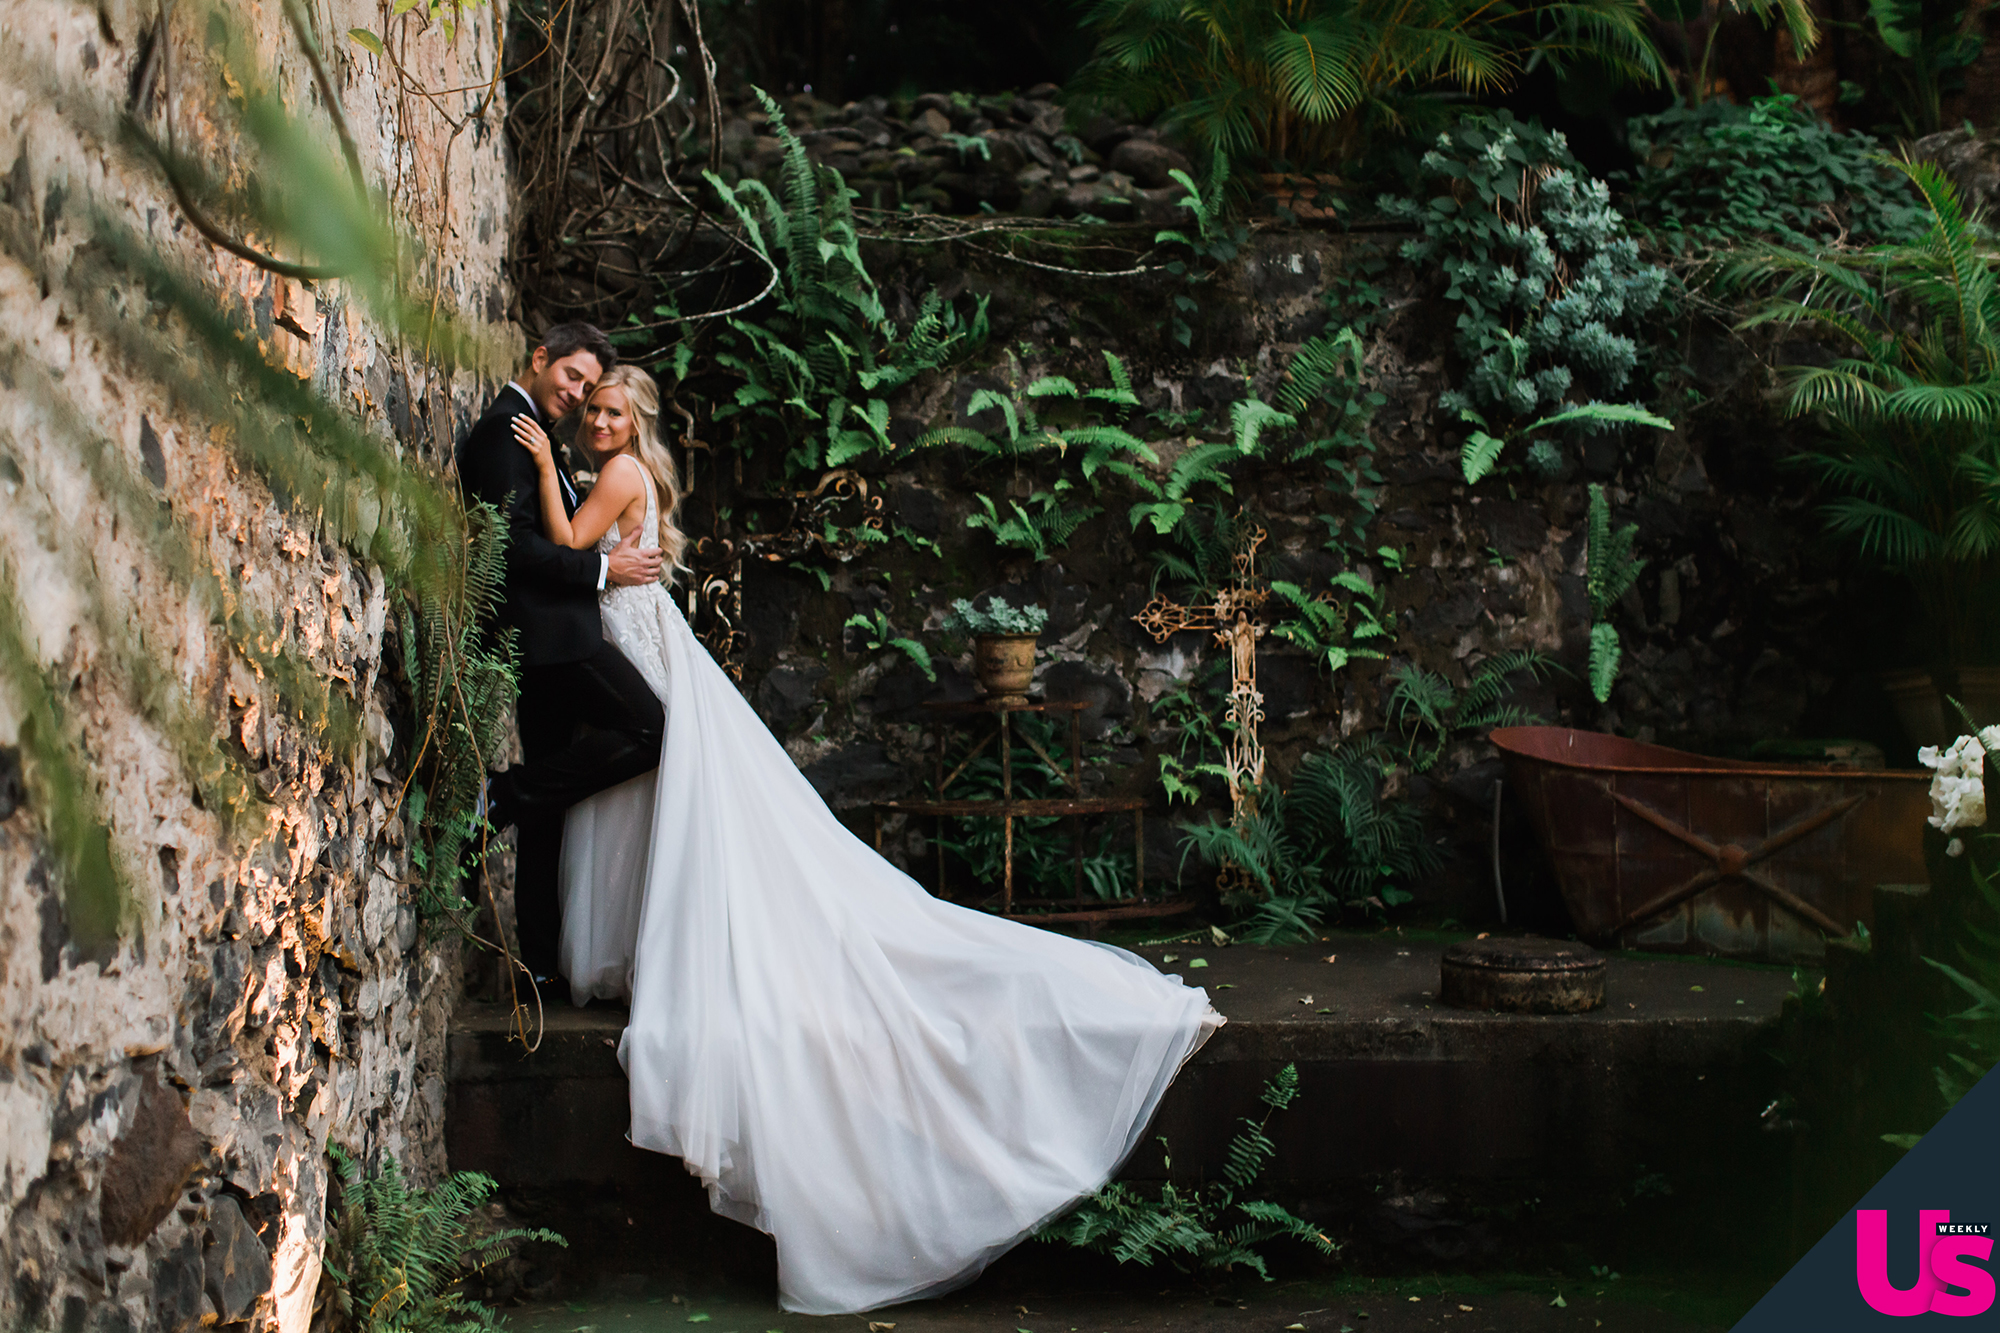 Arie-Luyendyk-Jr. -and-Lauren-Burnham-Wedding - While the newlyweds took romantic photos in the perfect setting, their guests enjoyed a cocktail hour that included kalua porkm wontons, mochiko chicken and Lokelani Sparkling Rosé from the Bubbly Bar.